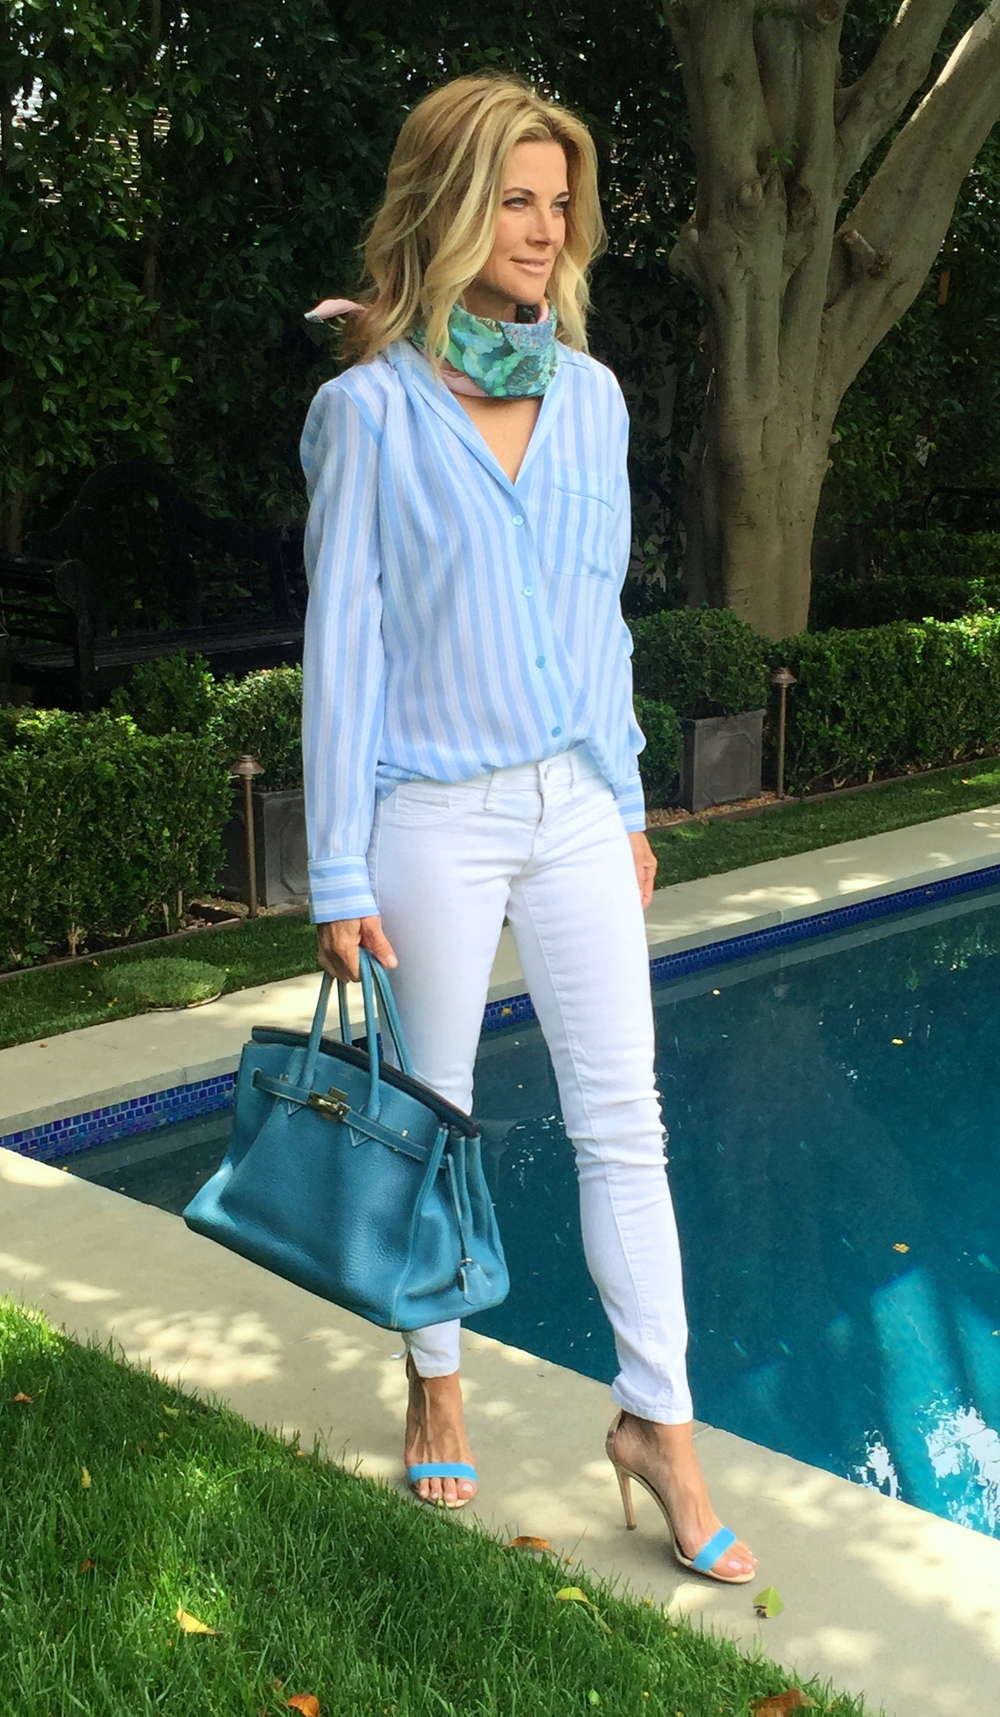 I am a big fan of EQUIPMENT   clothing  .  It works year round, it's sophisticated, sexy and oh so soft.  White Jeans,  Flying Monkeys , Tibi http://www.tibi.com/shop/shoes/pumps  Strappy sandals,  Hermes Birkin,   Hermes Scarf